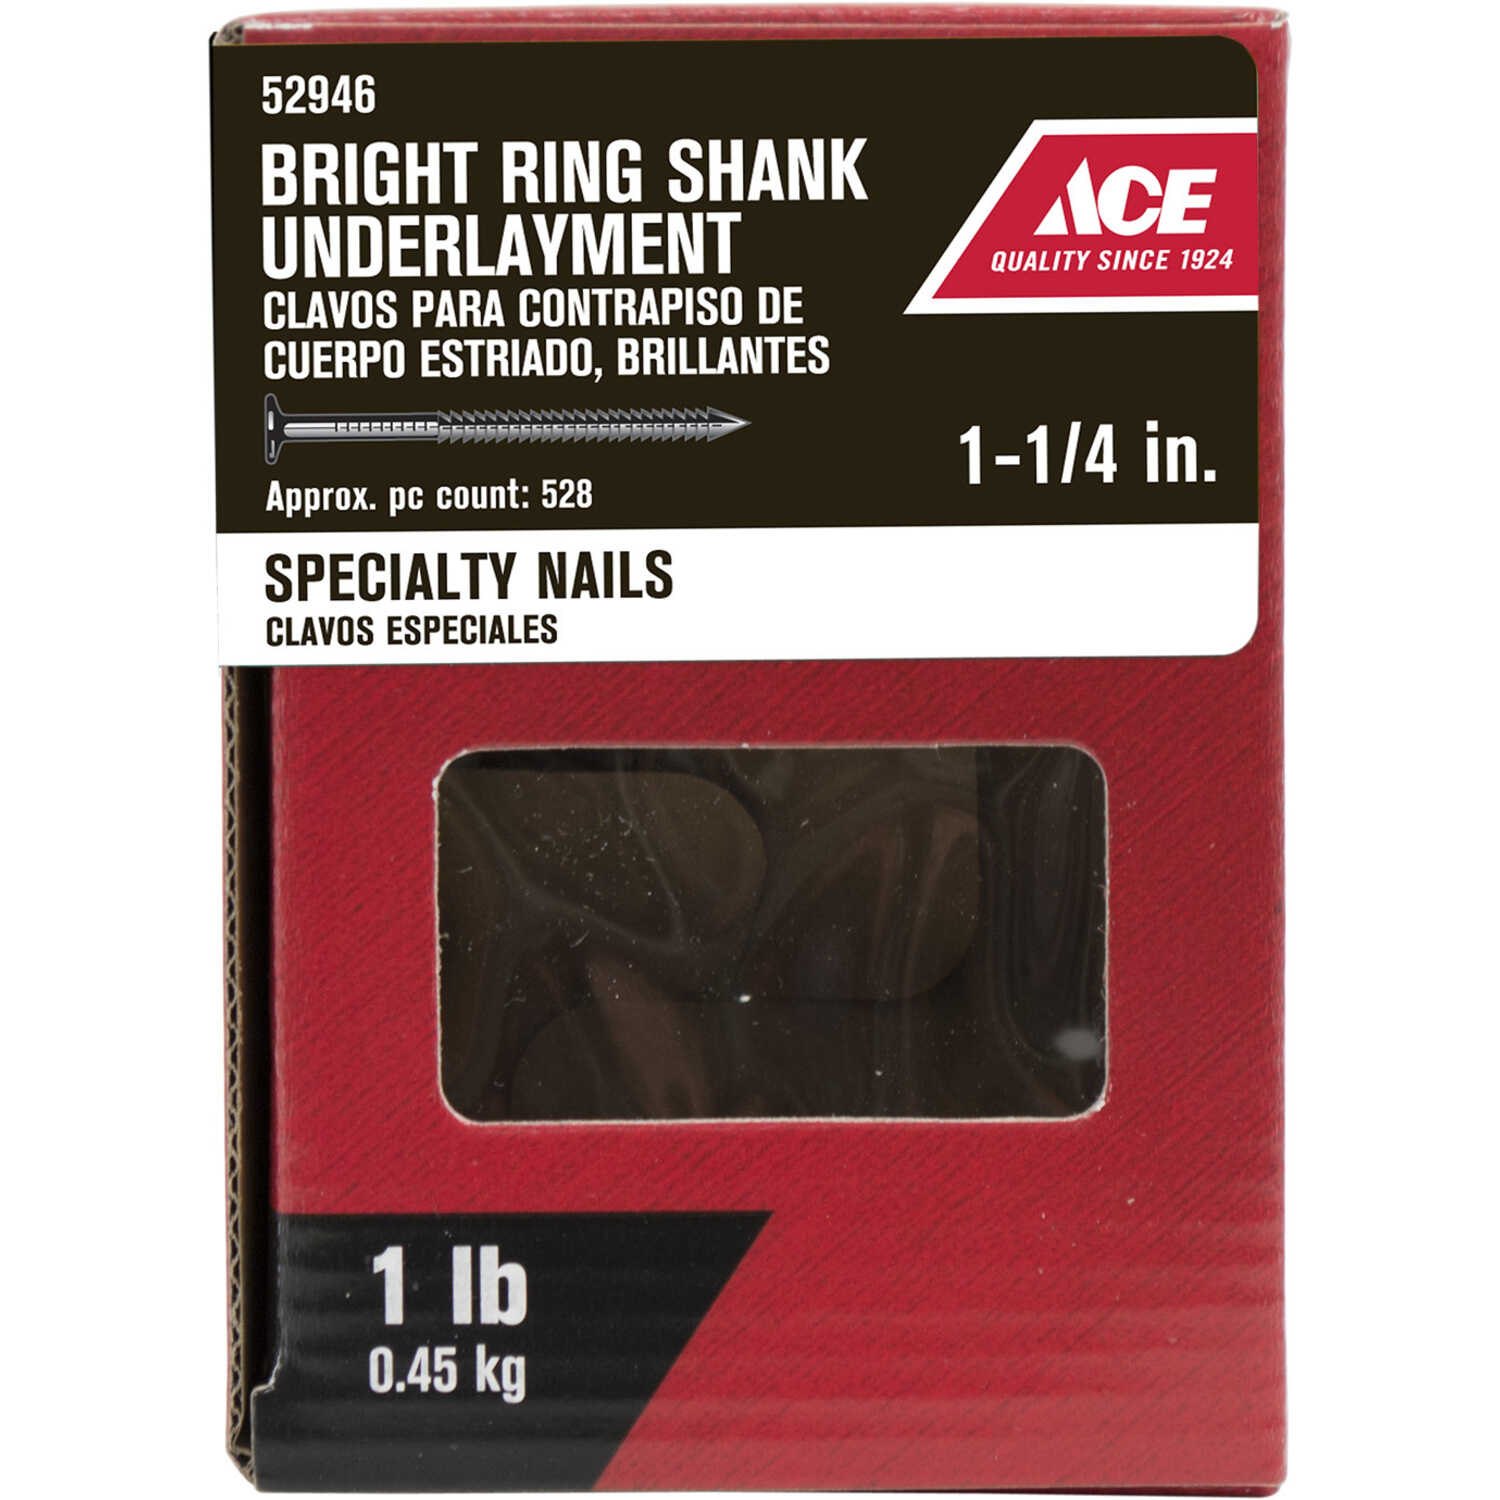 Ace  3D  1-1/4 in. L Underlayment  Bright  Steel  Nail  Annular Ring Shank  Round  1 lb.